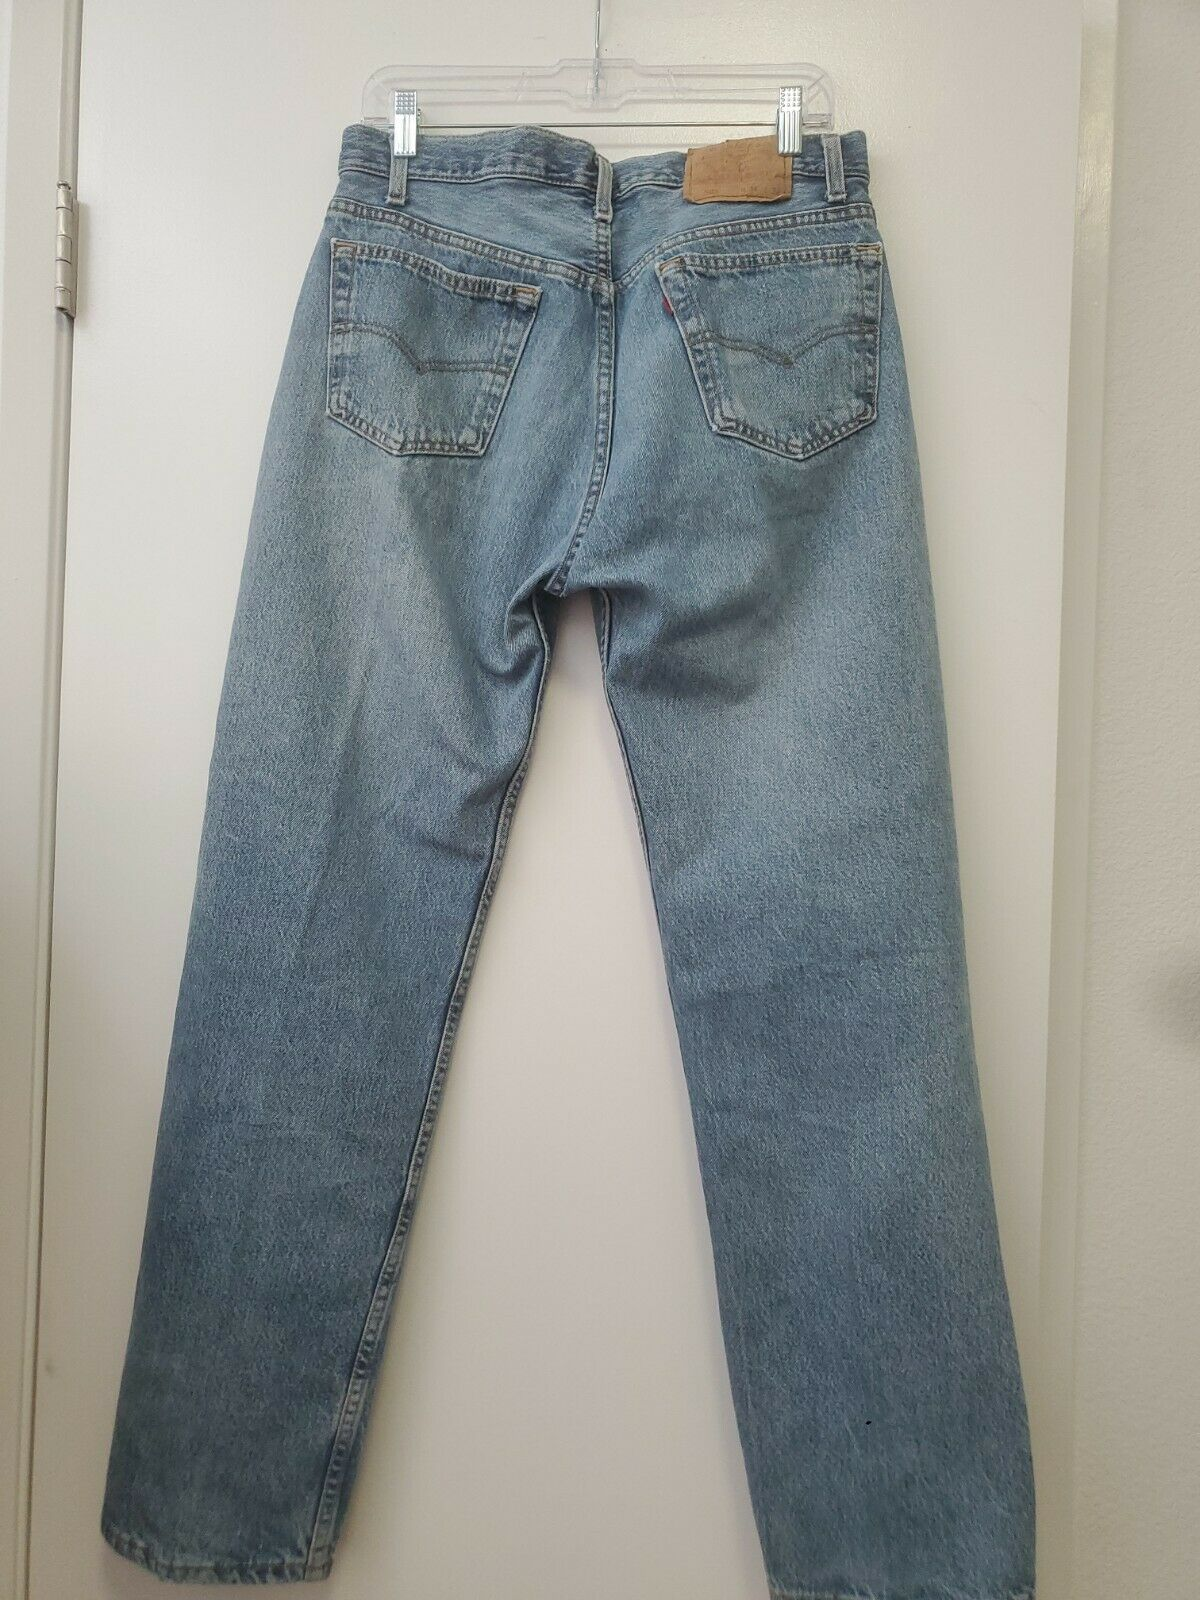 Vintage 501 Levis 34x32 Made In USA - image 5